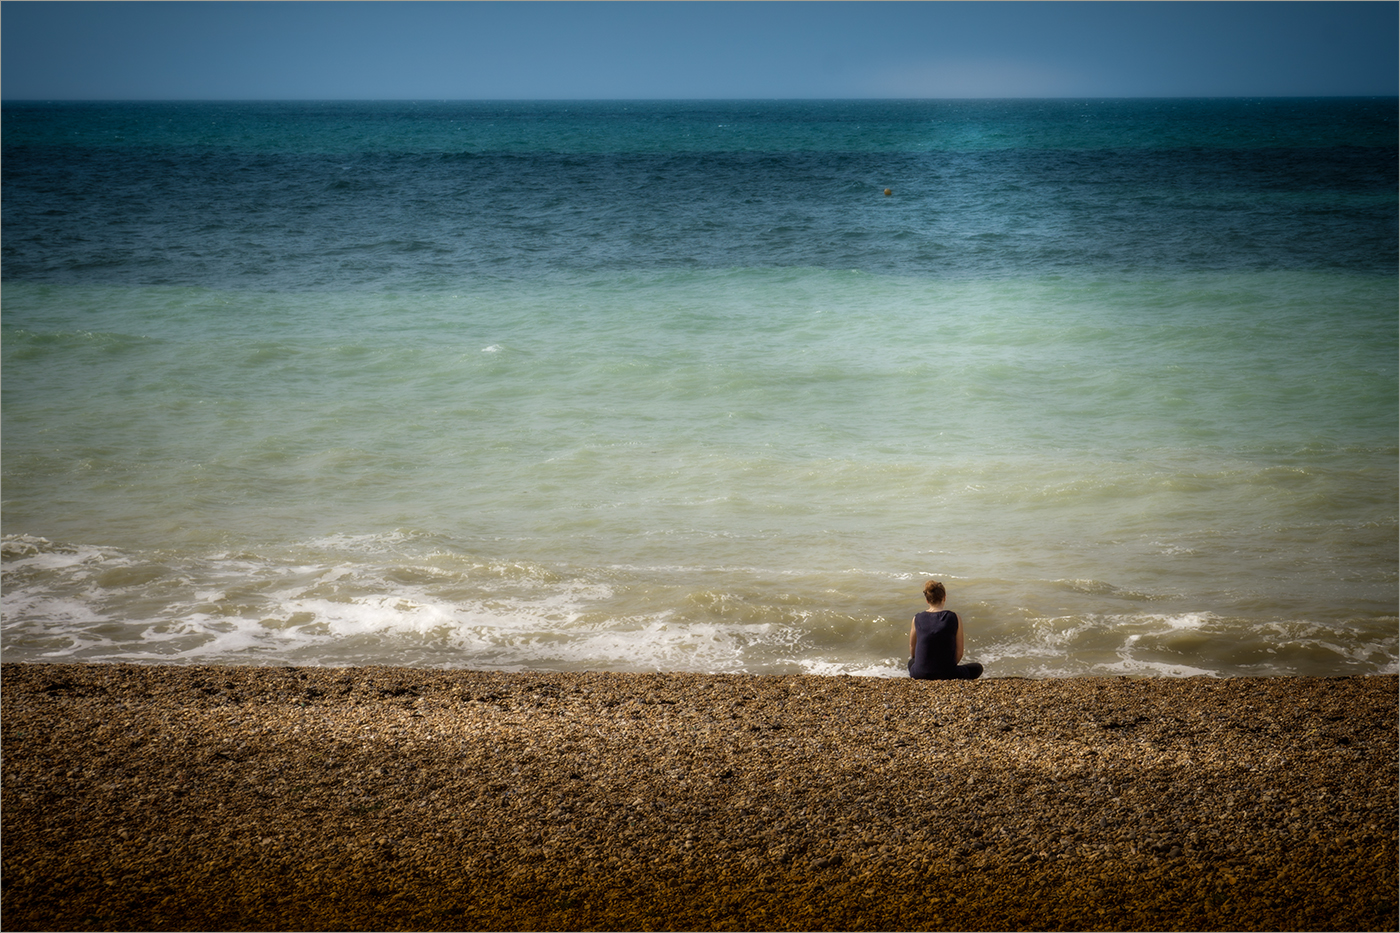 SOLITUDE by Ken Grant